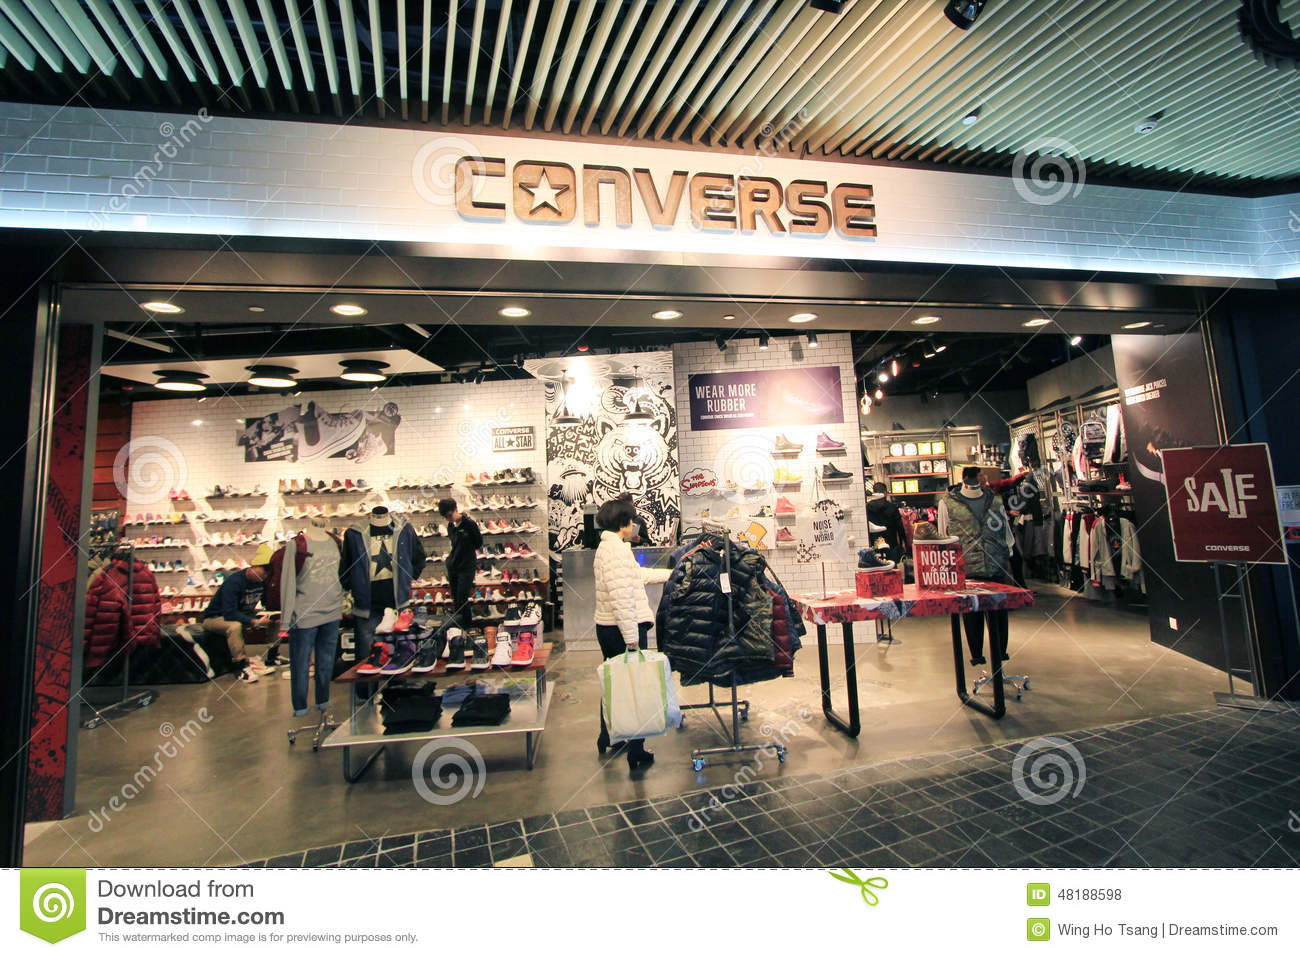 converse shoes hong kong